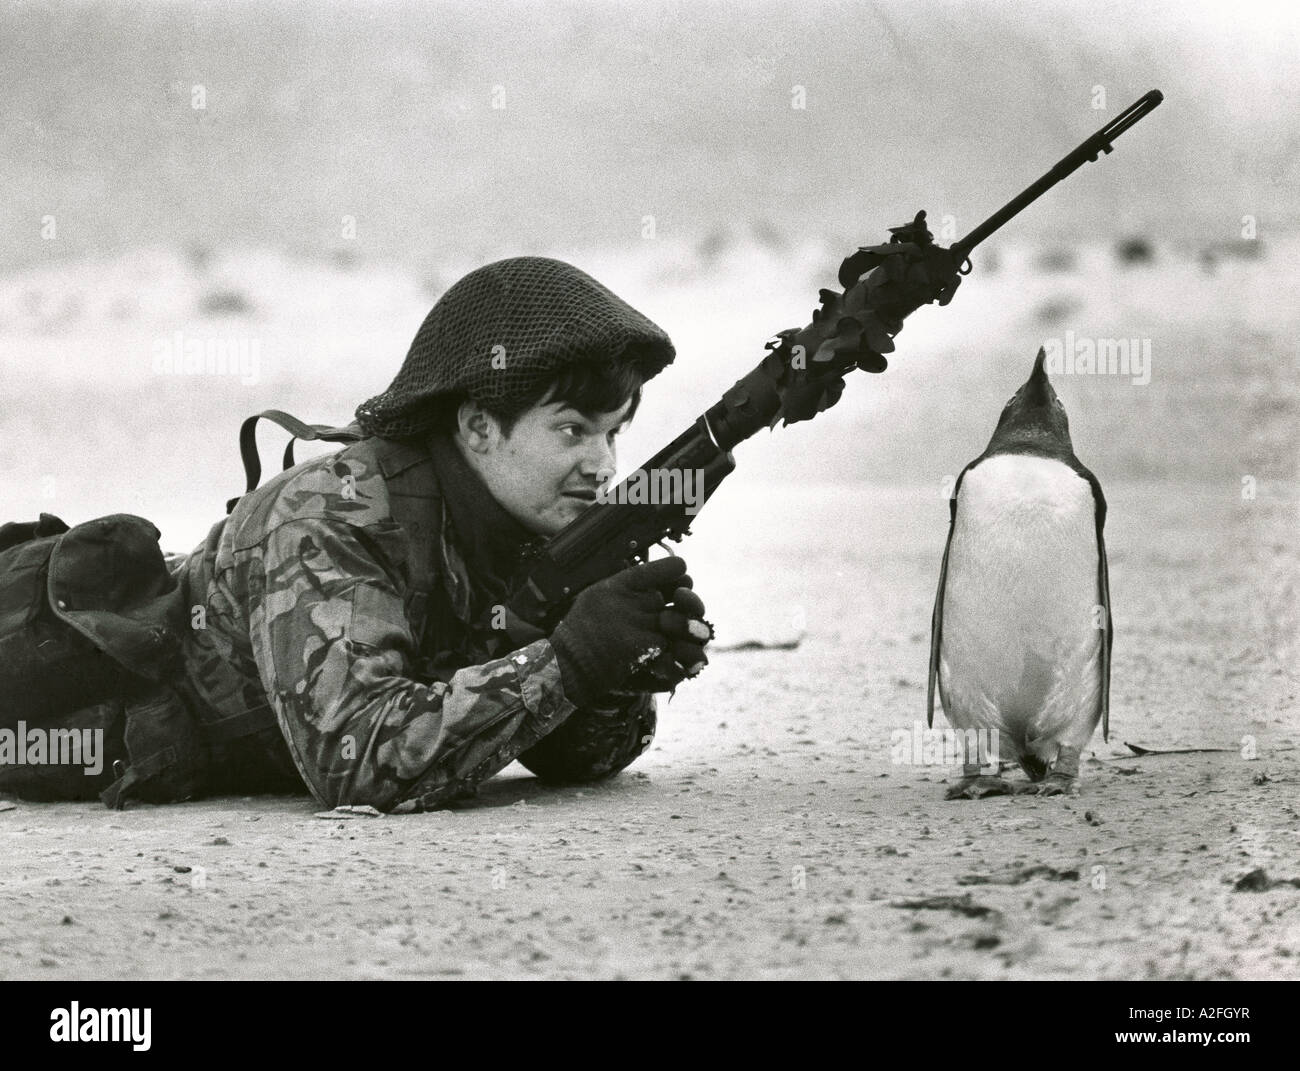 A British soldier and penguin on a beach in the Falkland Islands during a patrol in 1983 after the Falklands conflict - Stock Image